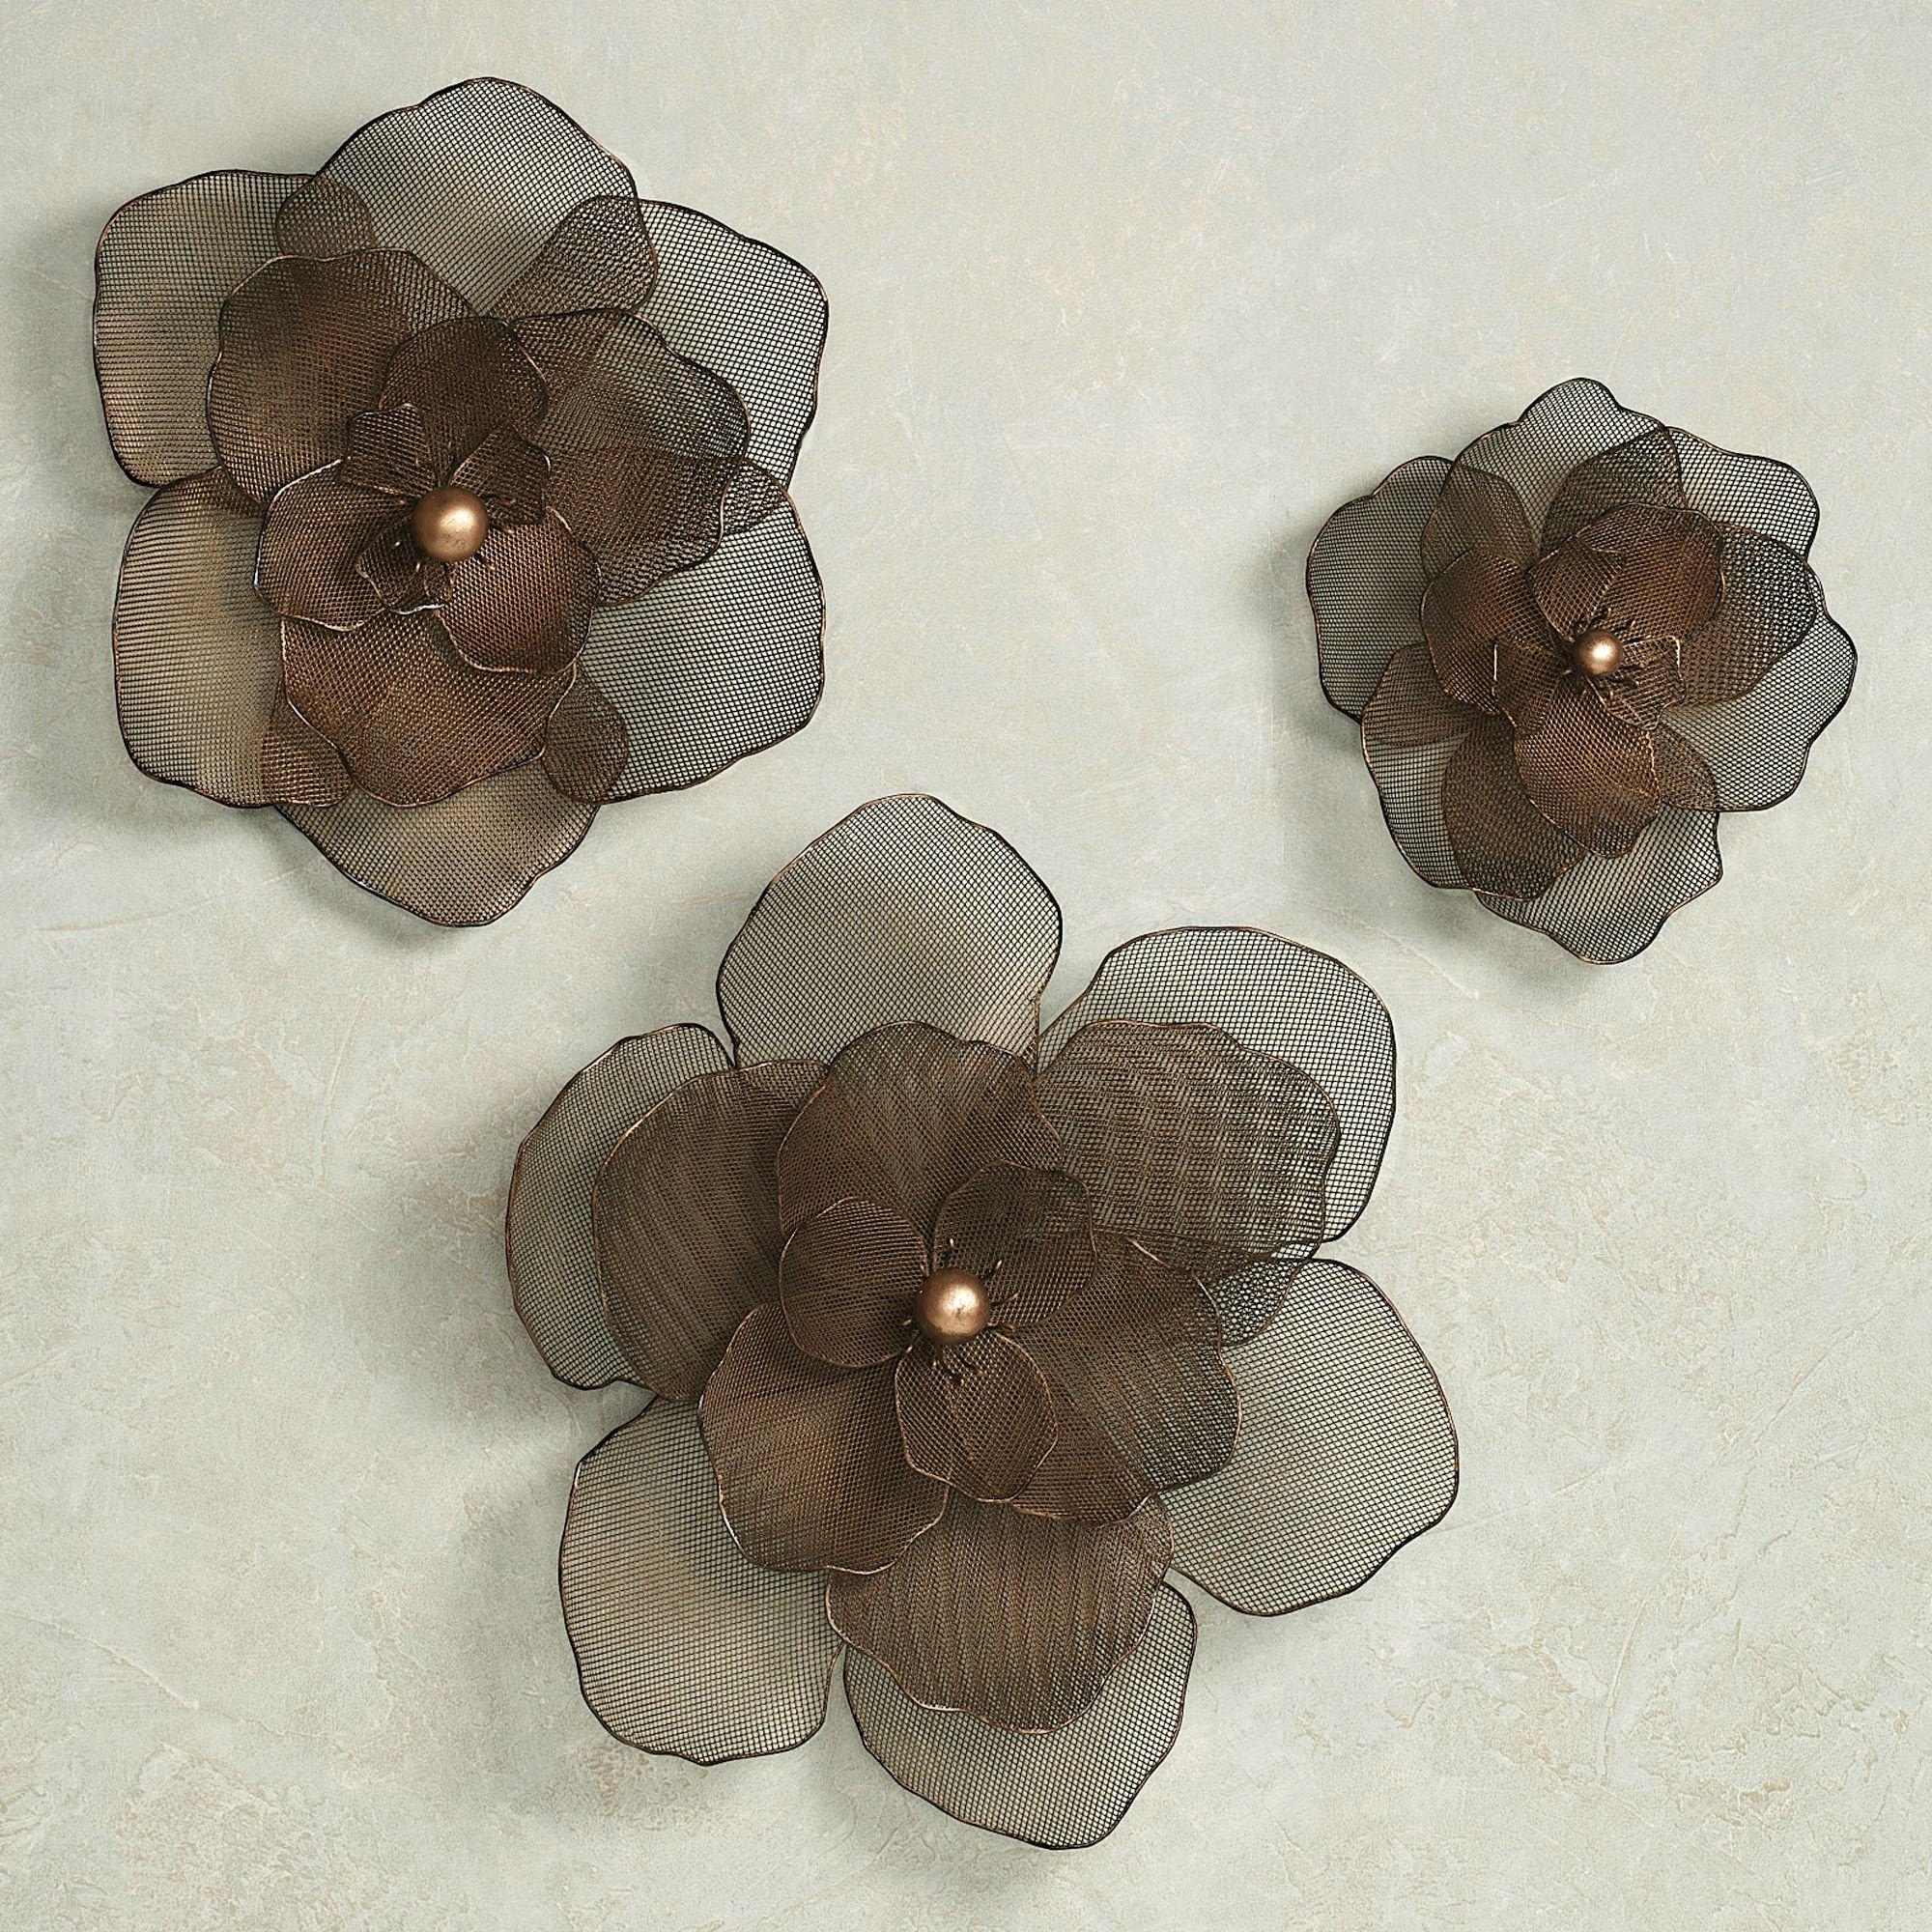 Asataire Flower Blossom Metal Wall Art Set Intended For Metallic Wall Art (Image 2 of 20)